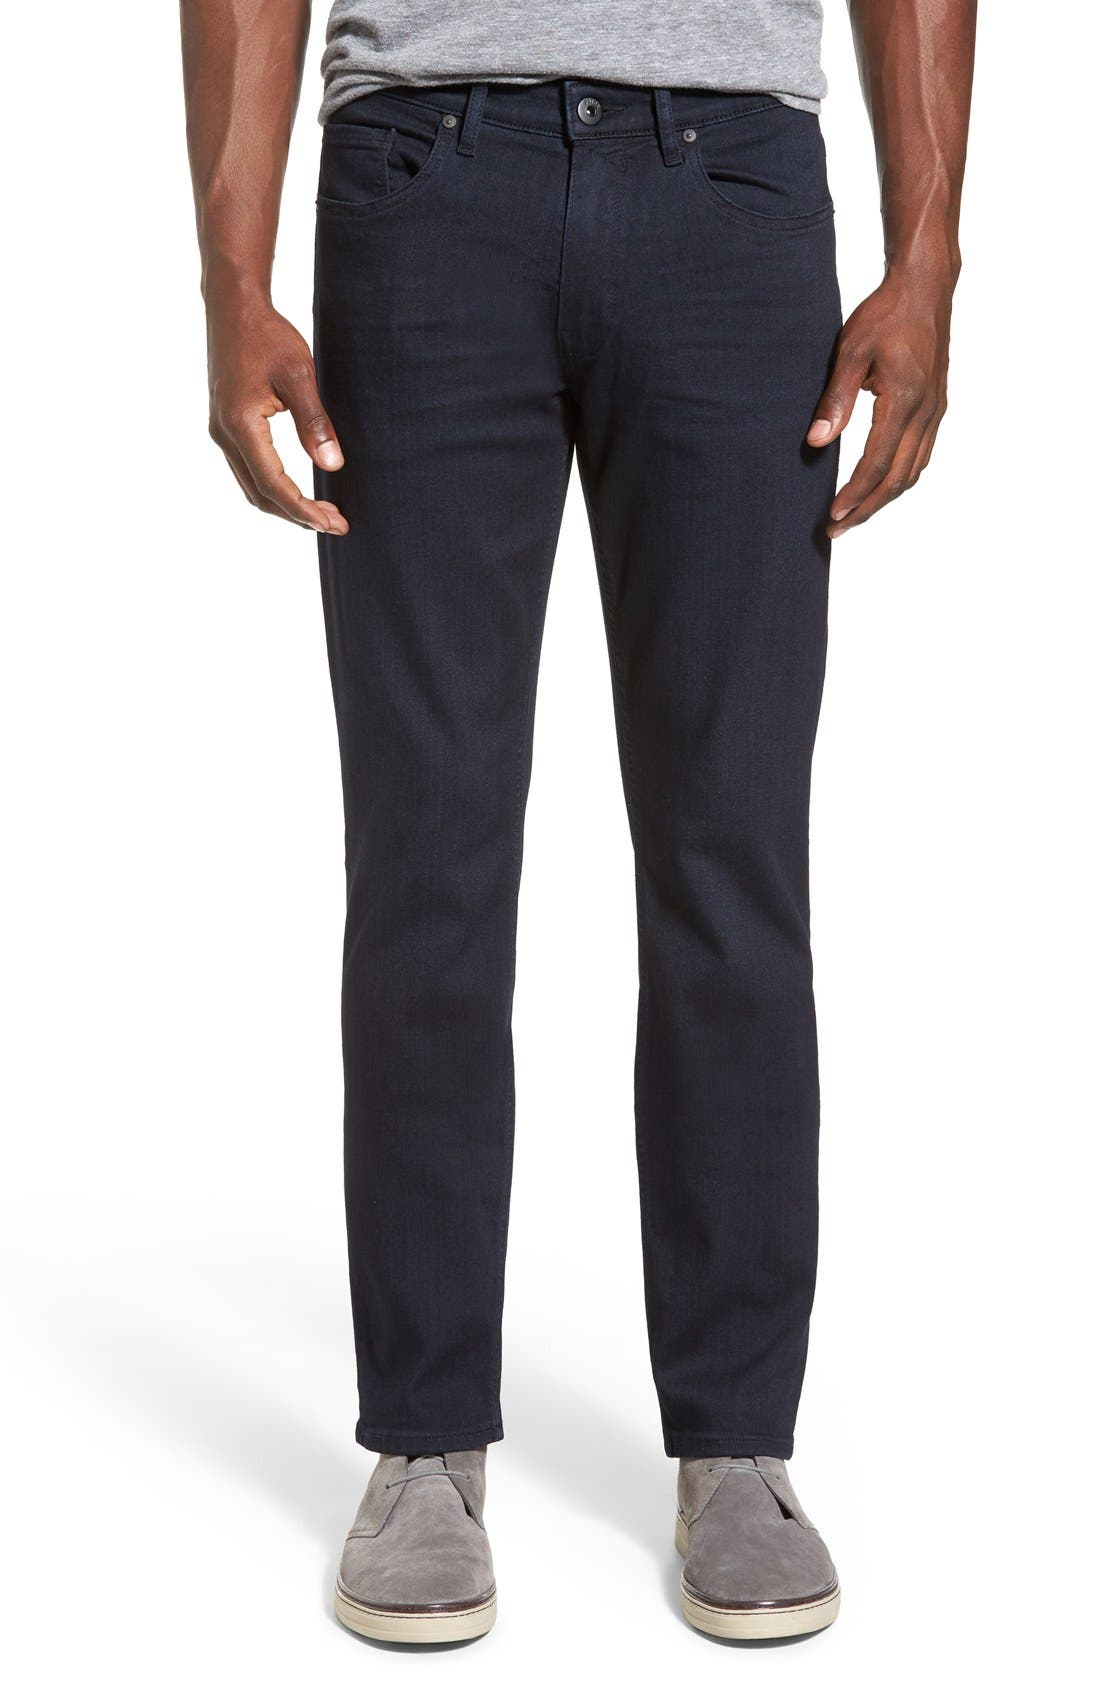 Transcend - Federal Slim Straight Leg Jeans,                             Main thumbnail 1, color,                             INKWELL